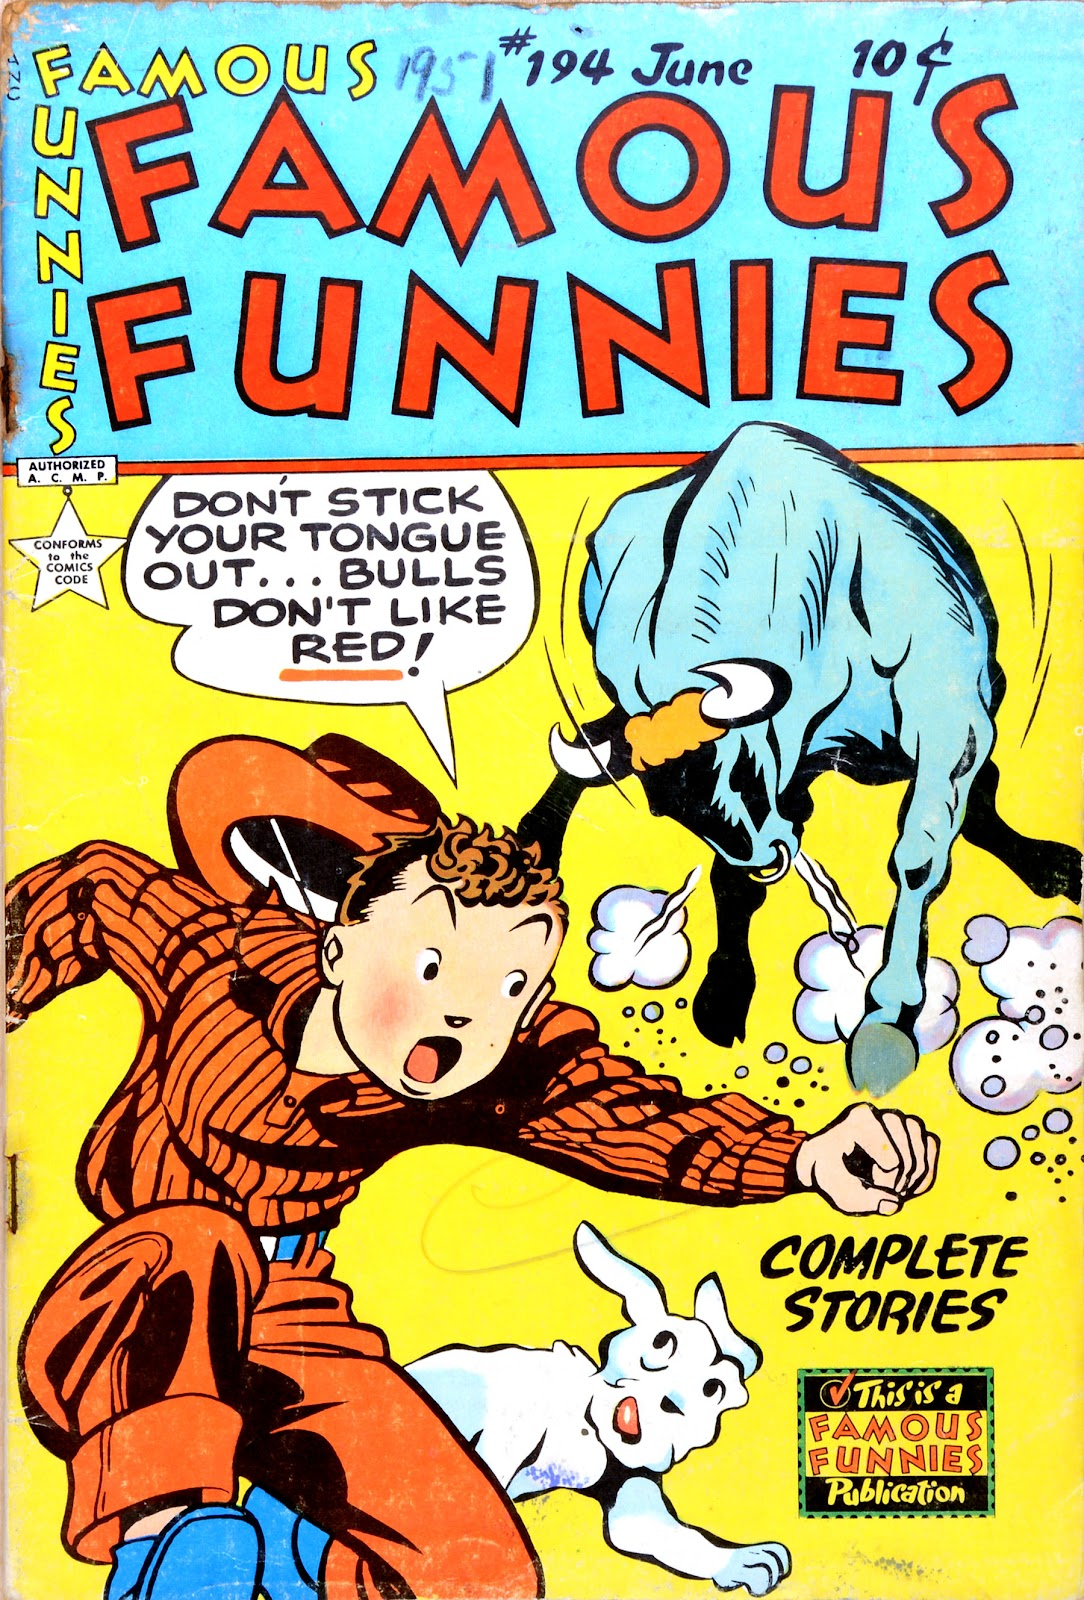 Read online Famous Funnies comic -  Issue #194 - 1